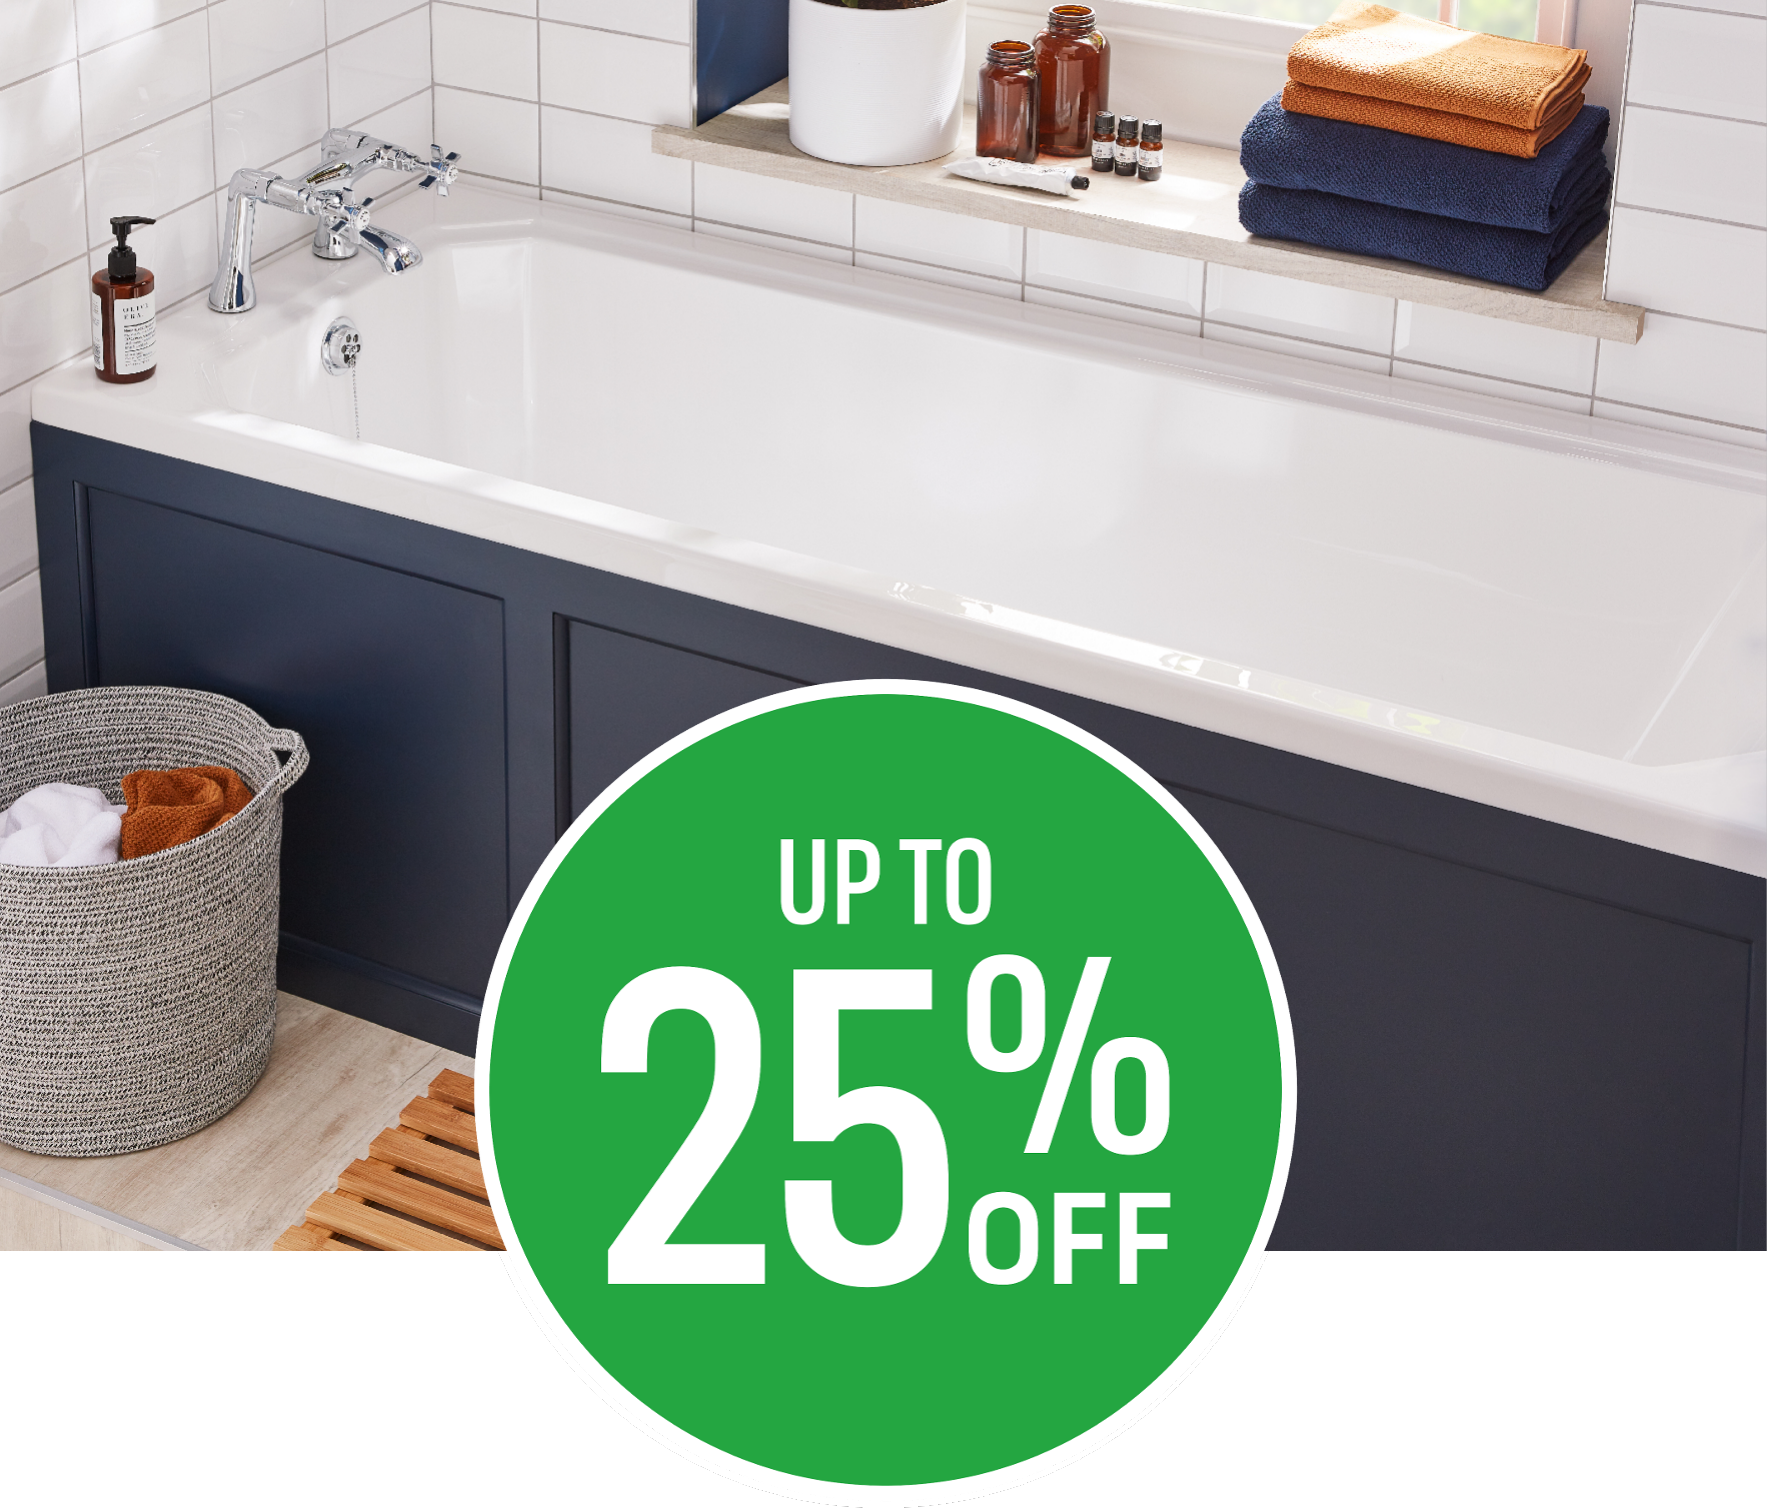 Beautiful Bathrooms for less - Get up to 25% off Selected Bathstore products